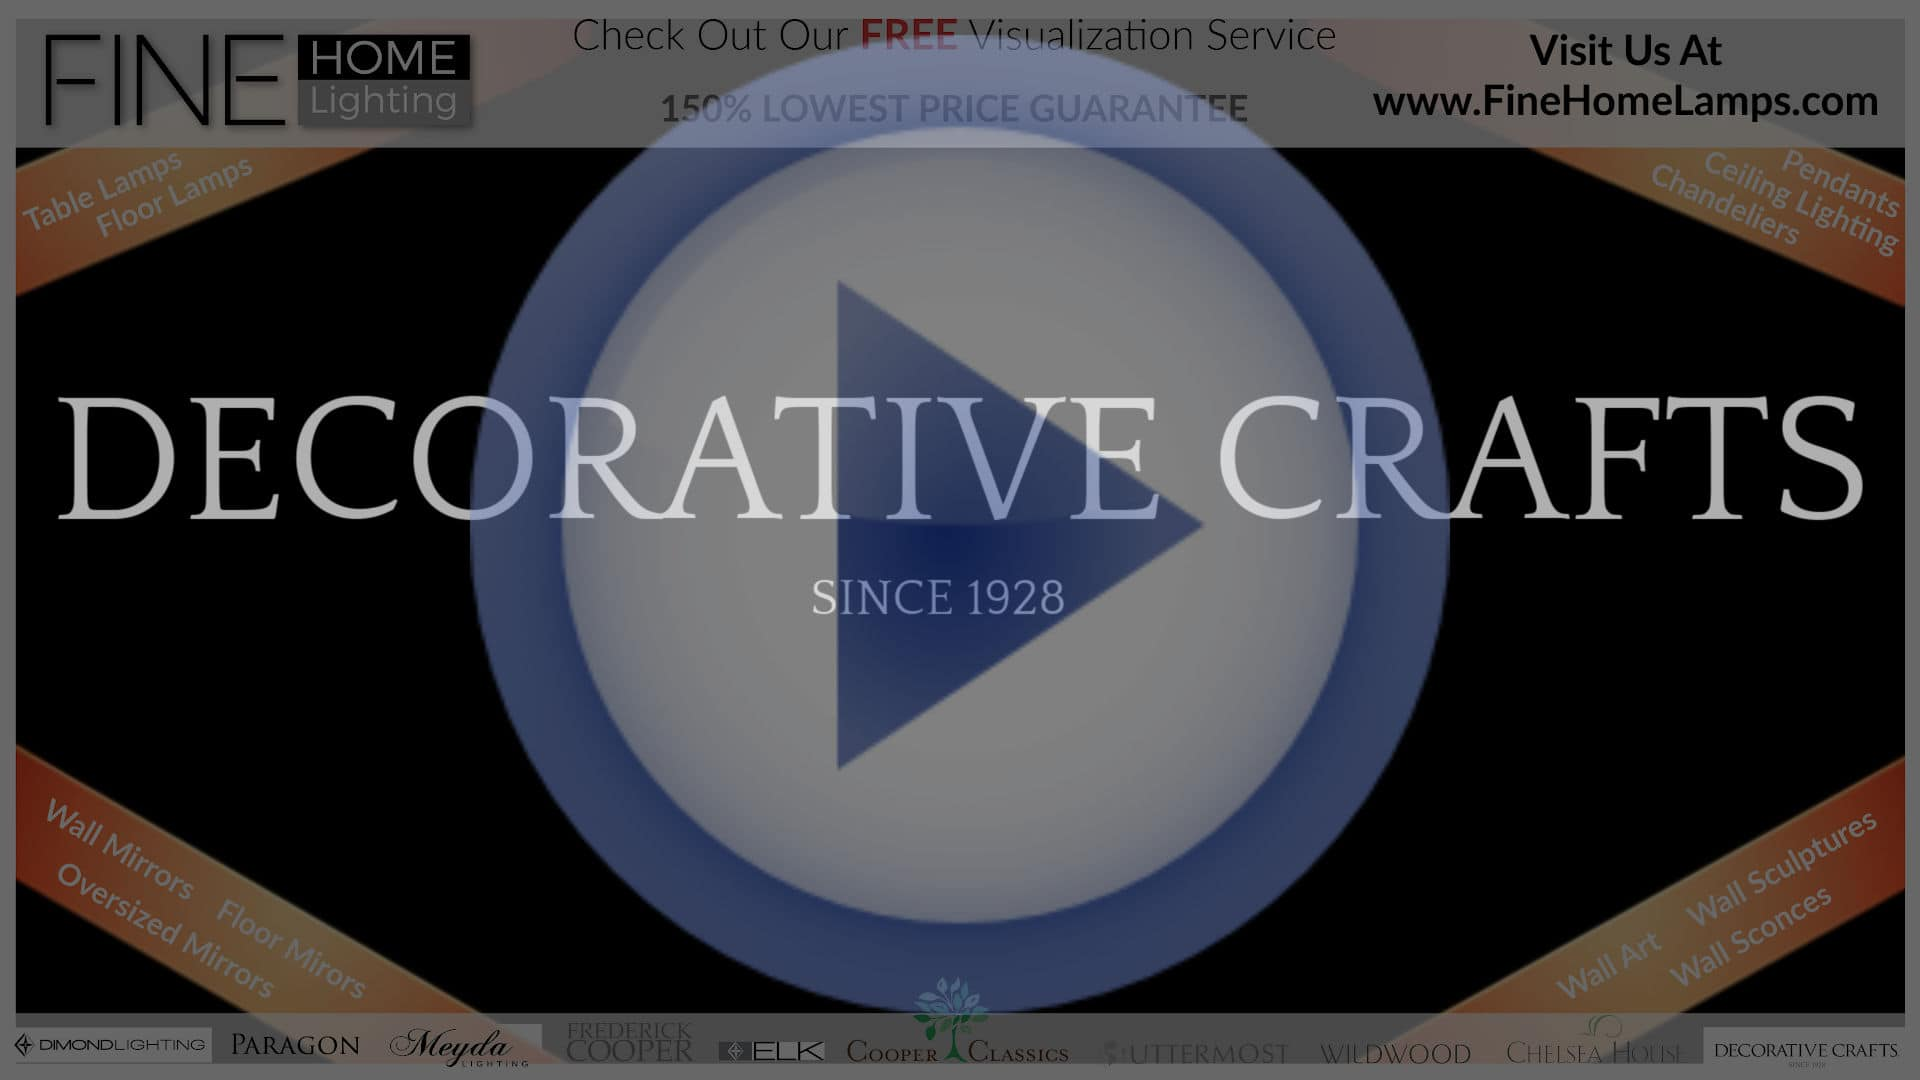 DECORATIVE-CRAFTS-PREVIEW-Thanks-for-watching-this-video-Get-an-additional-15-percent-off-your-next-purchase-Use-Coupon-Code-VIDEO